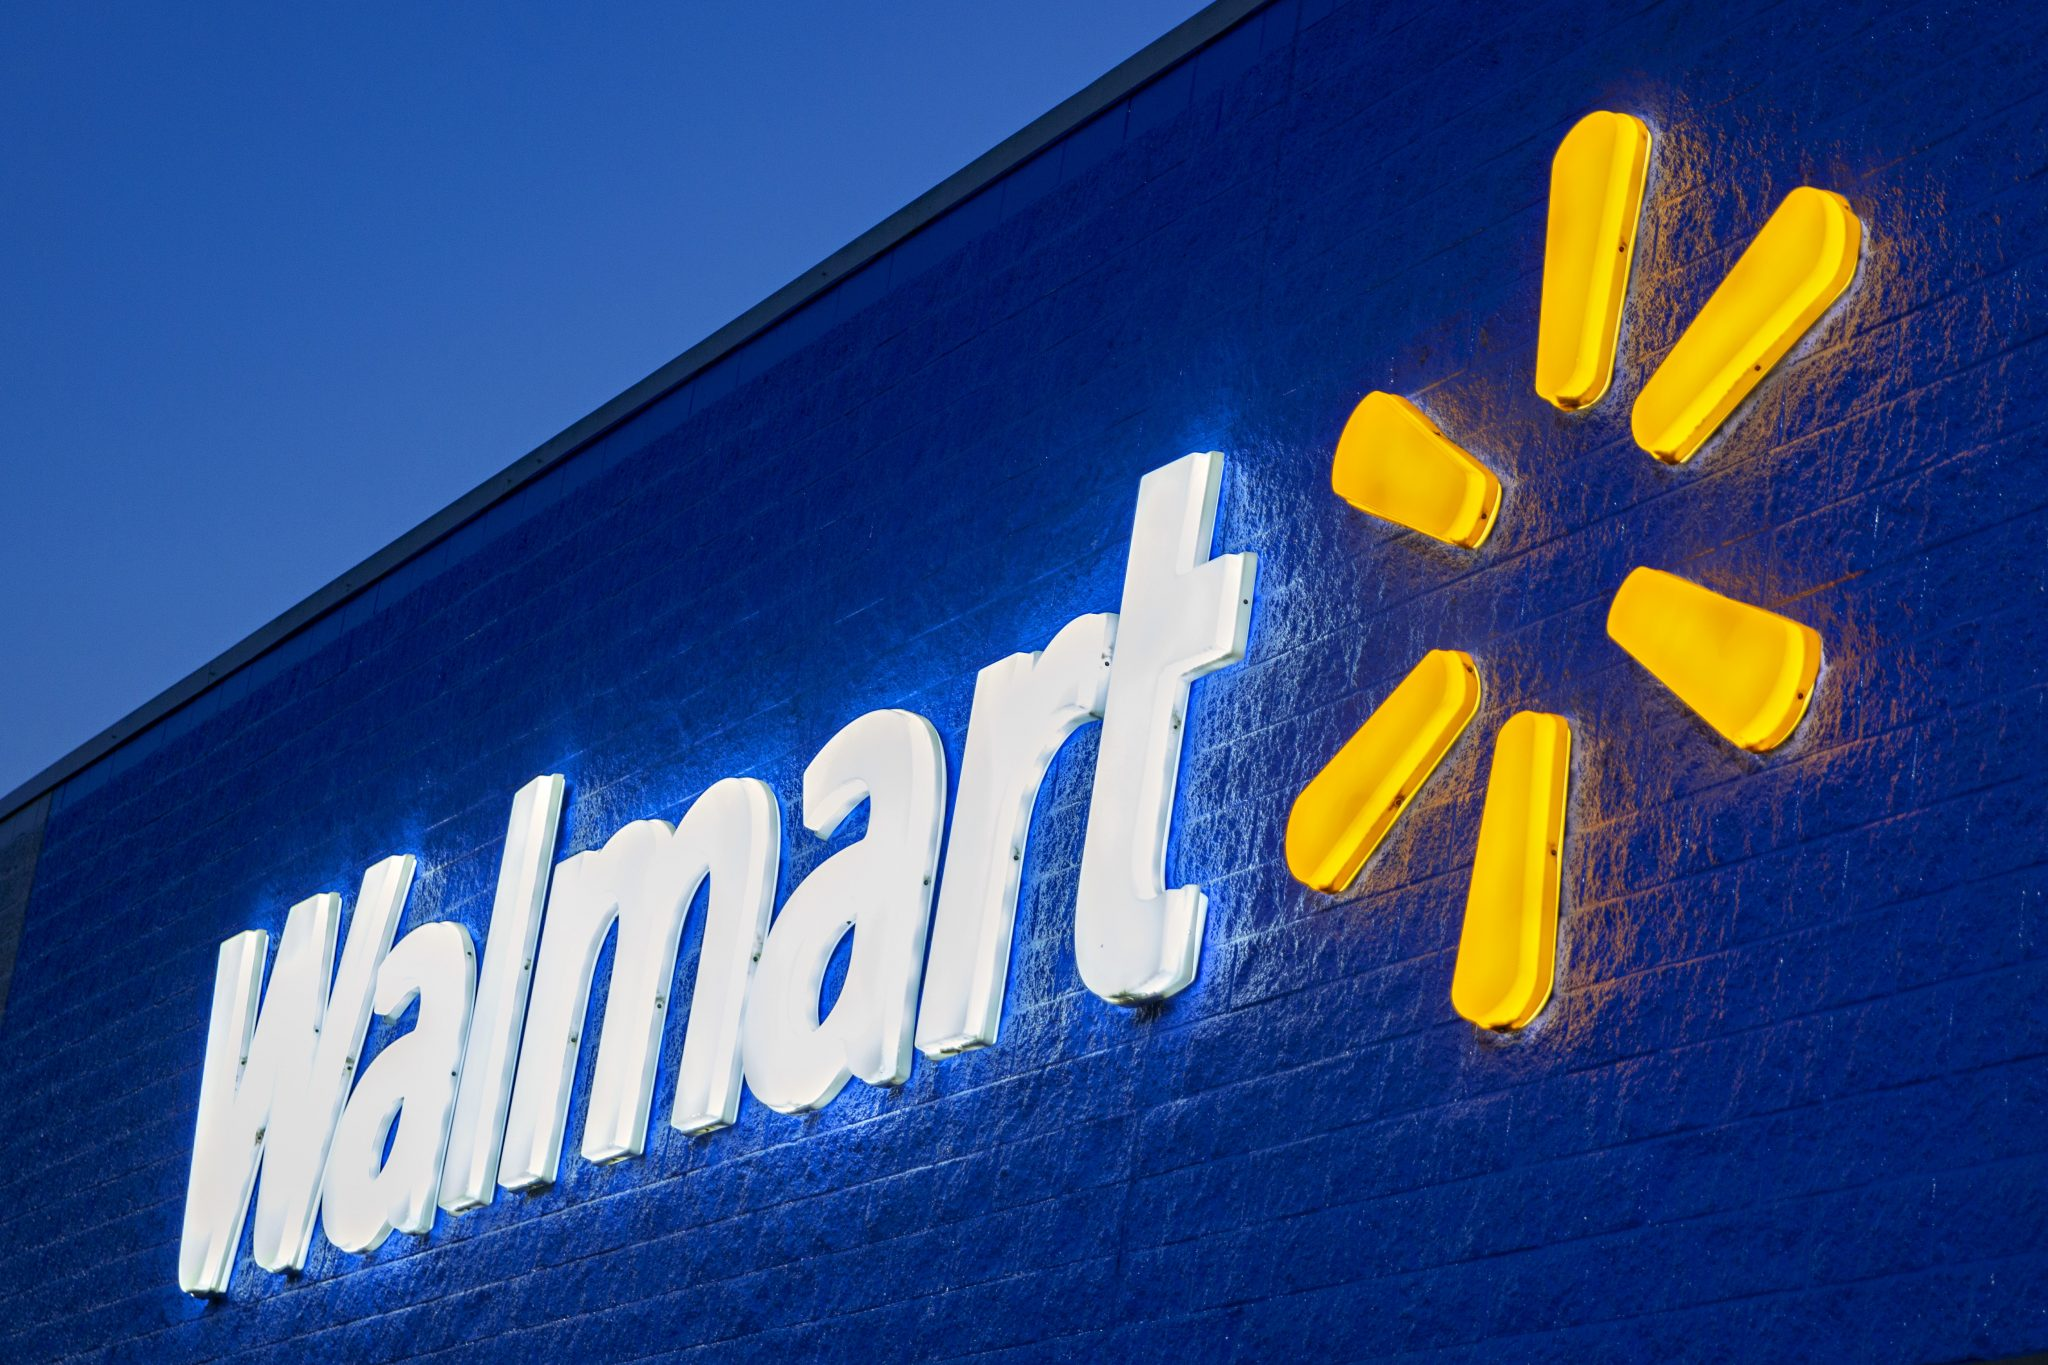 Walmart adopts more hydrogen fuel cell technology